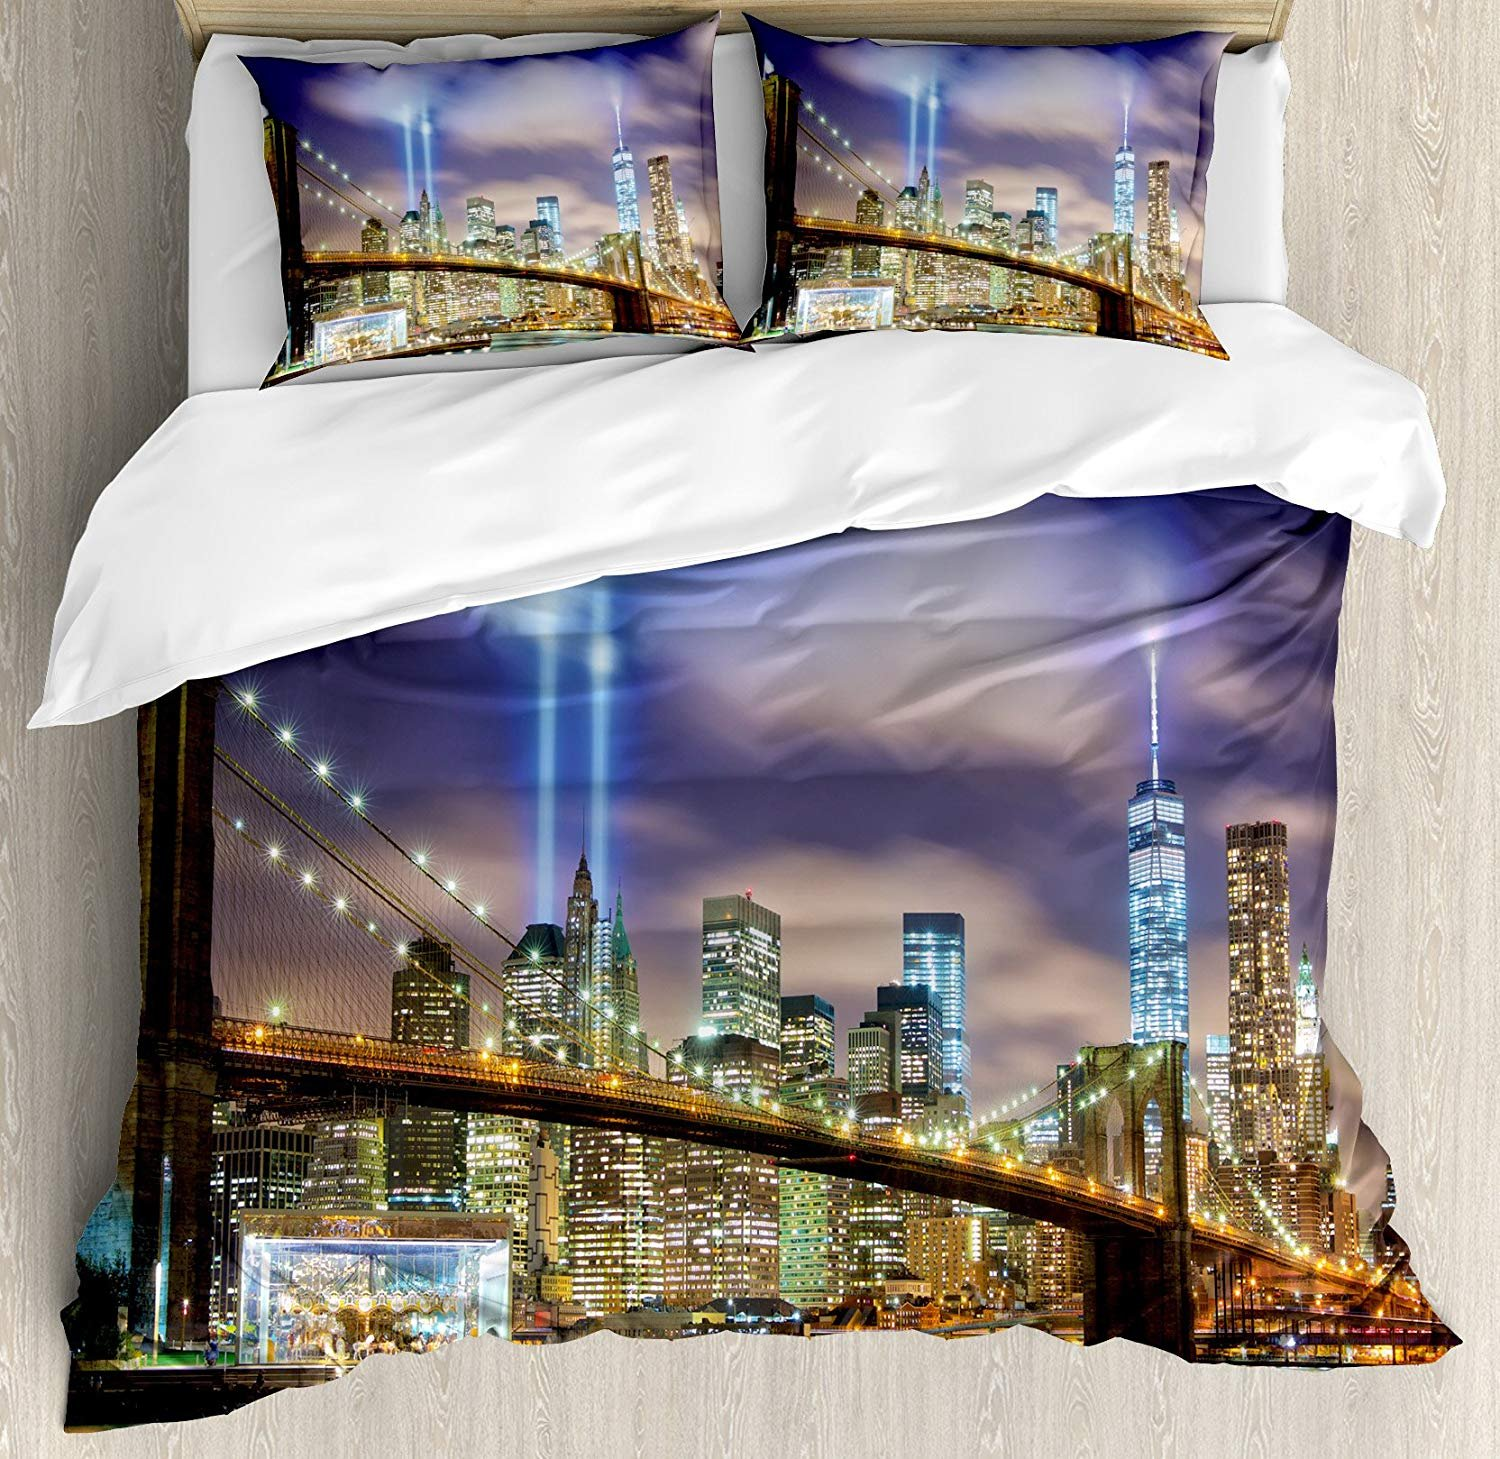 Landscape Bedding Duvet Cover Sets for Children/Adult/Kids/Teens Twin Size, Manhattan Skyline with Brooklyn Bridge and Towers in NYC United States America, Hotel Luxury Decorative 4pcs, Puple Green